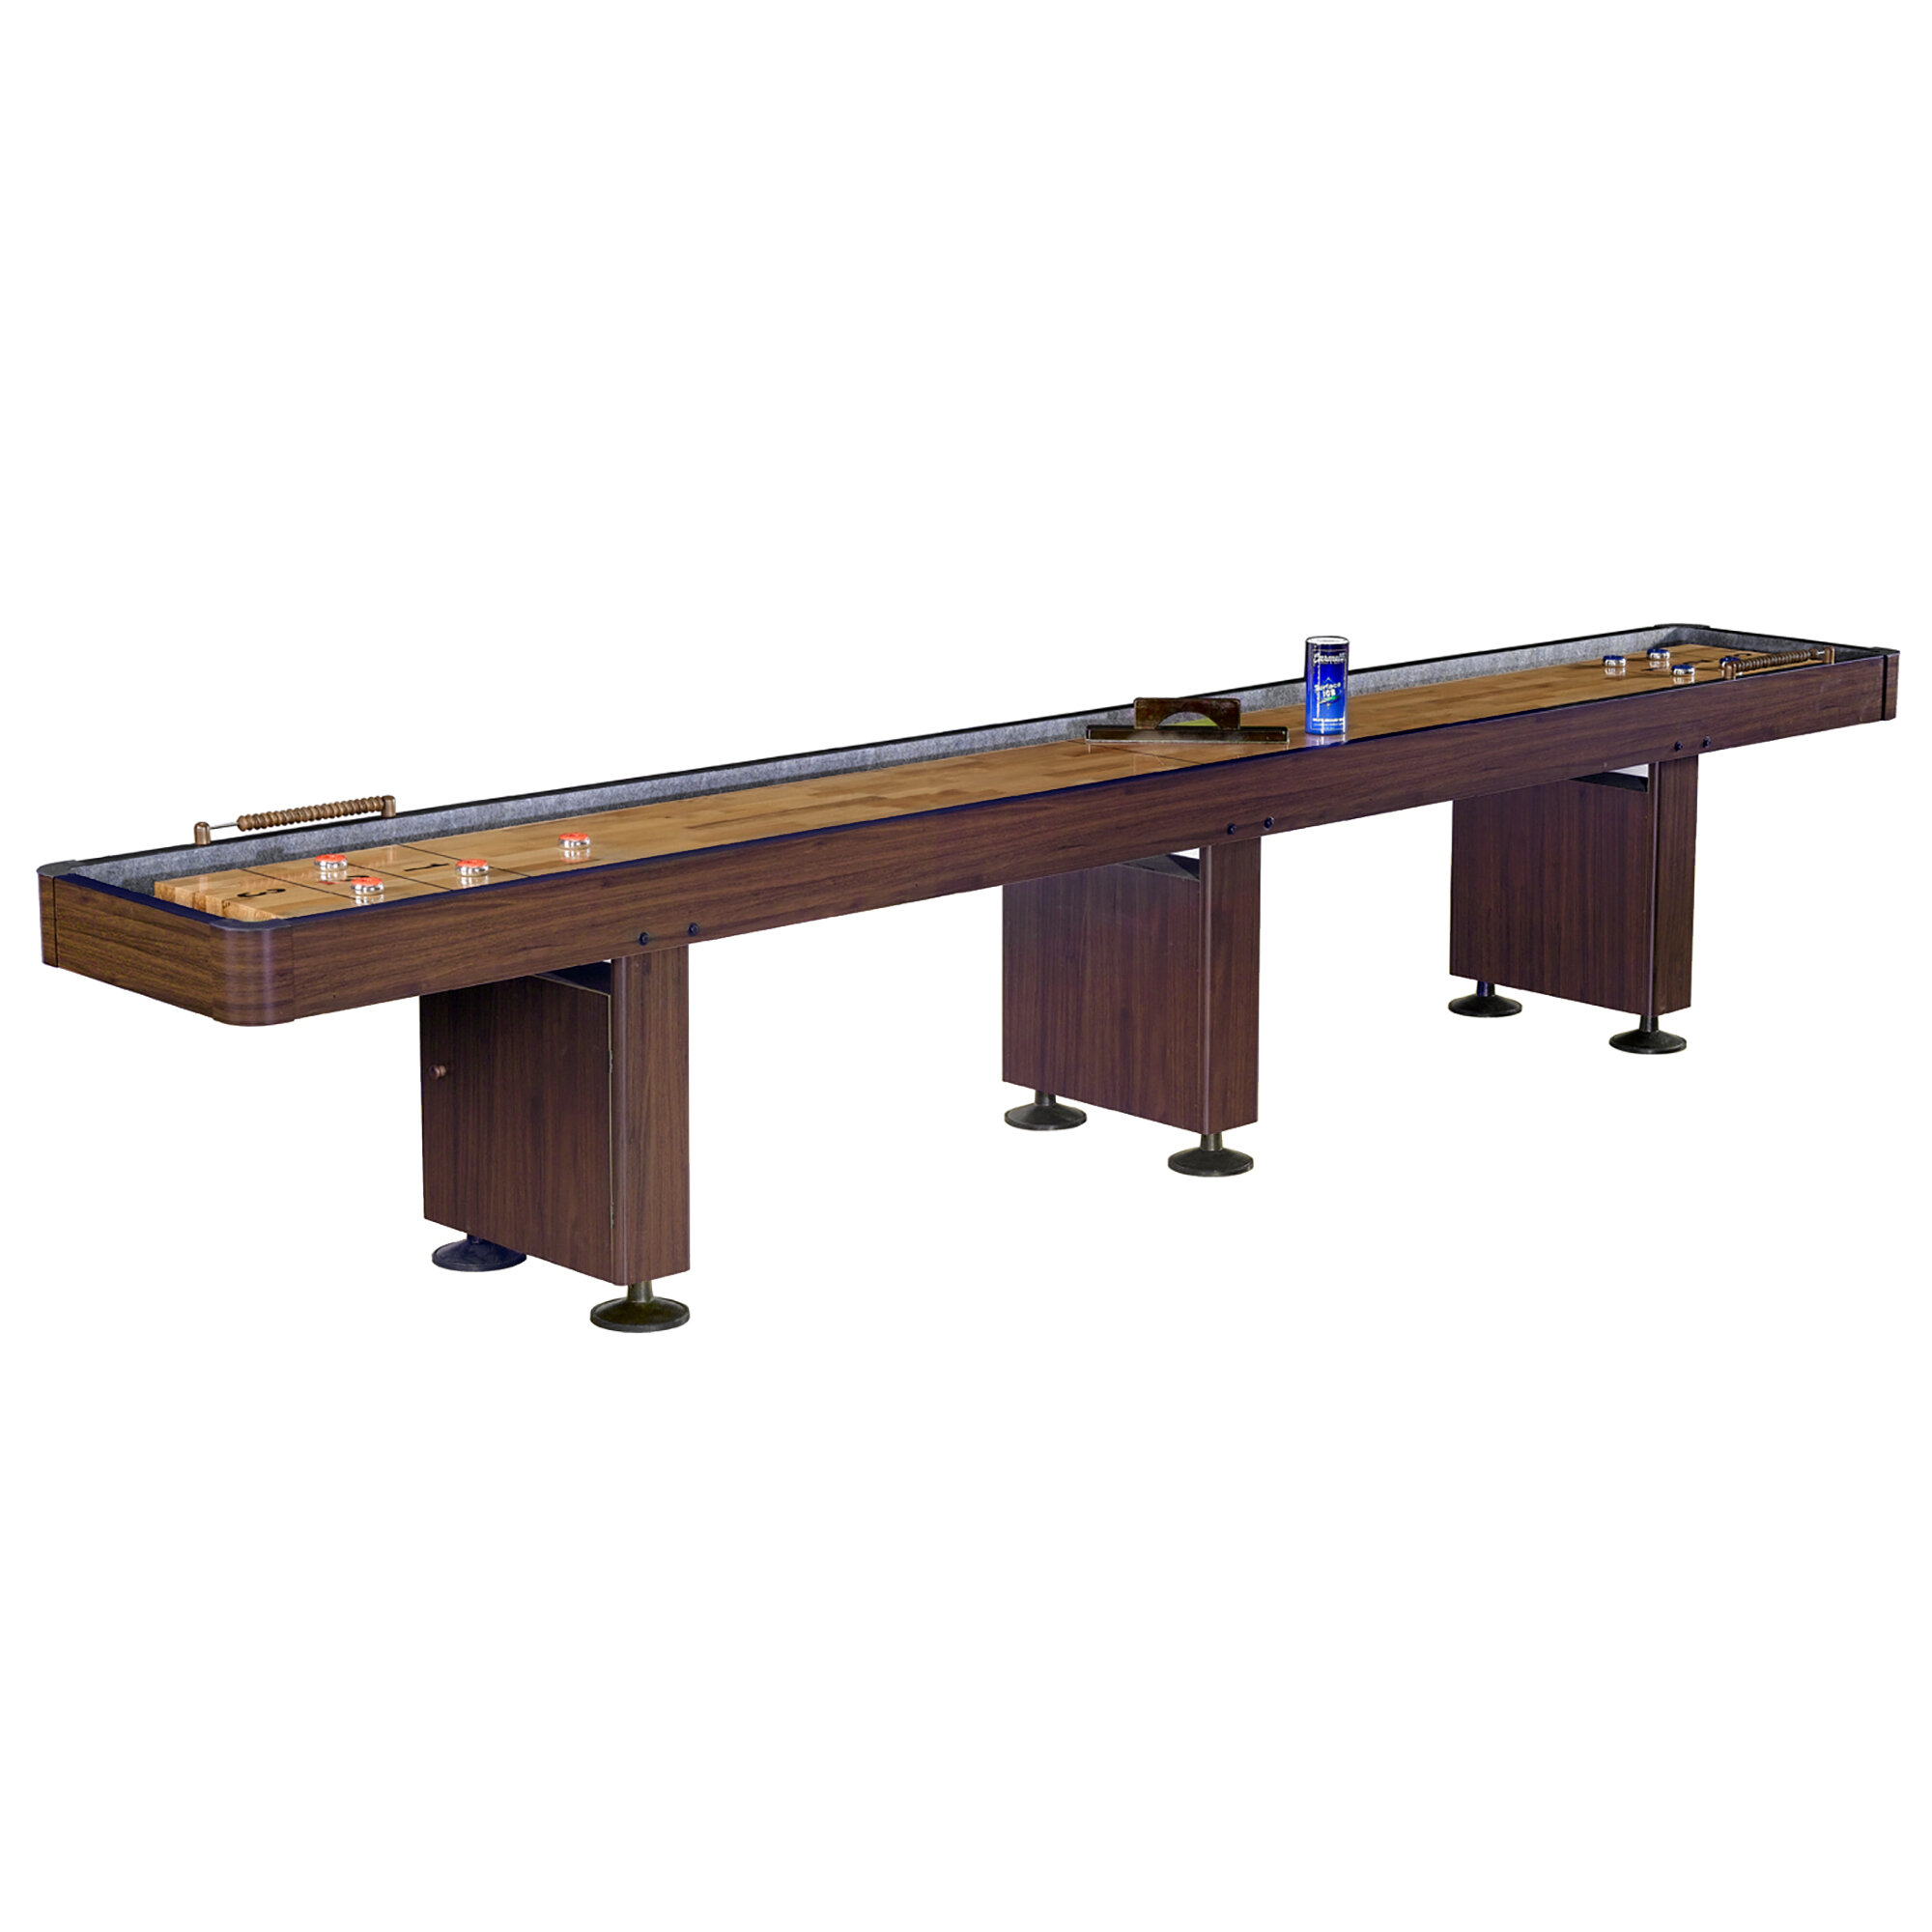 photo table fullxfull gallery shuffleboard custom listing usa the il made in